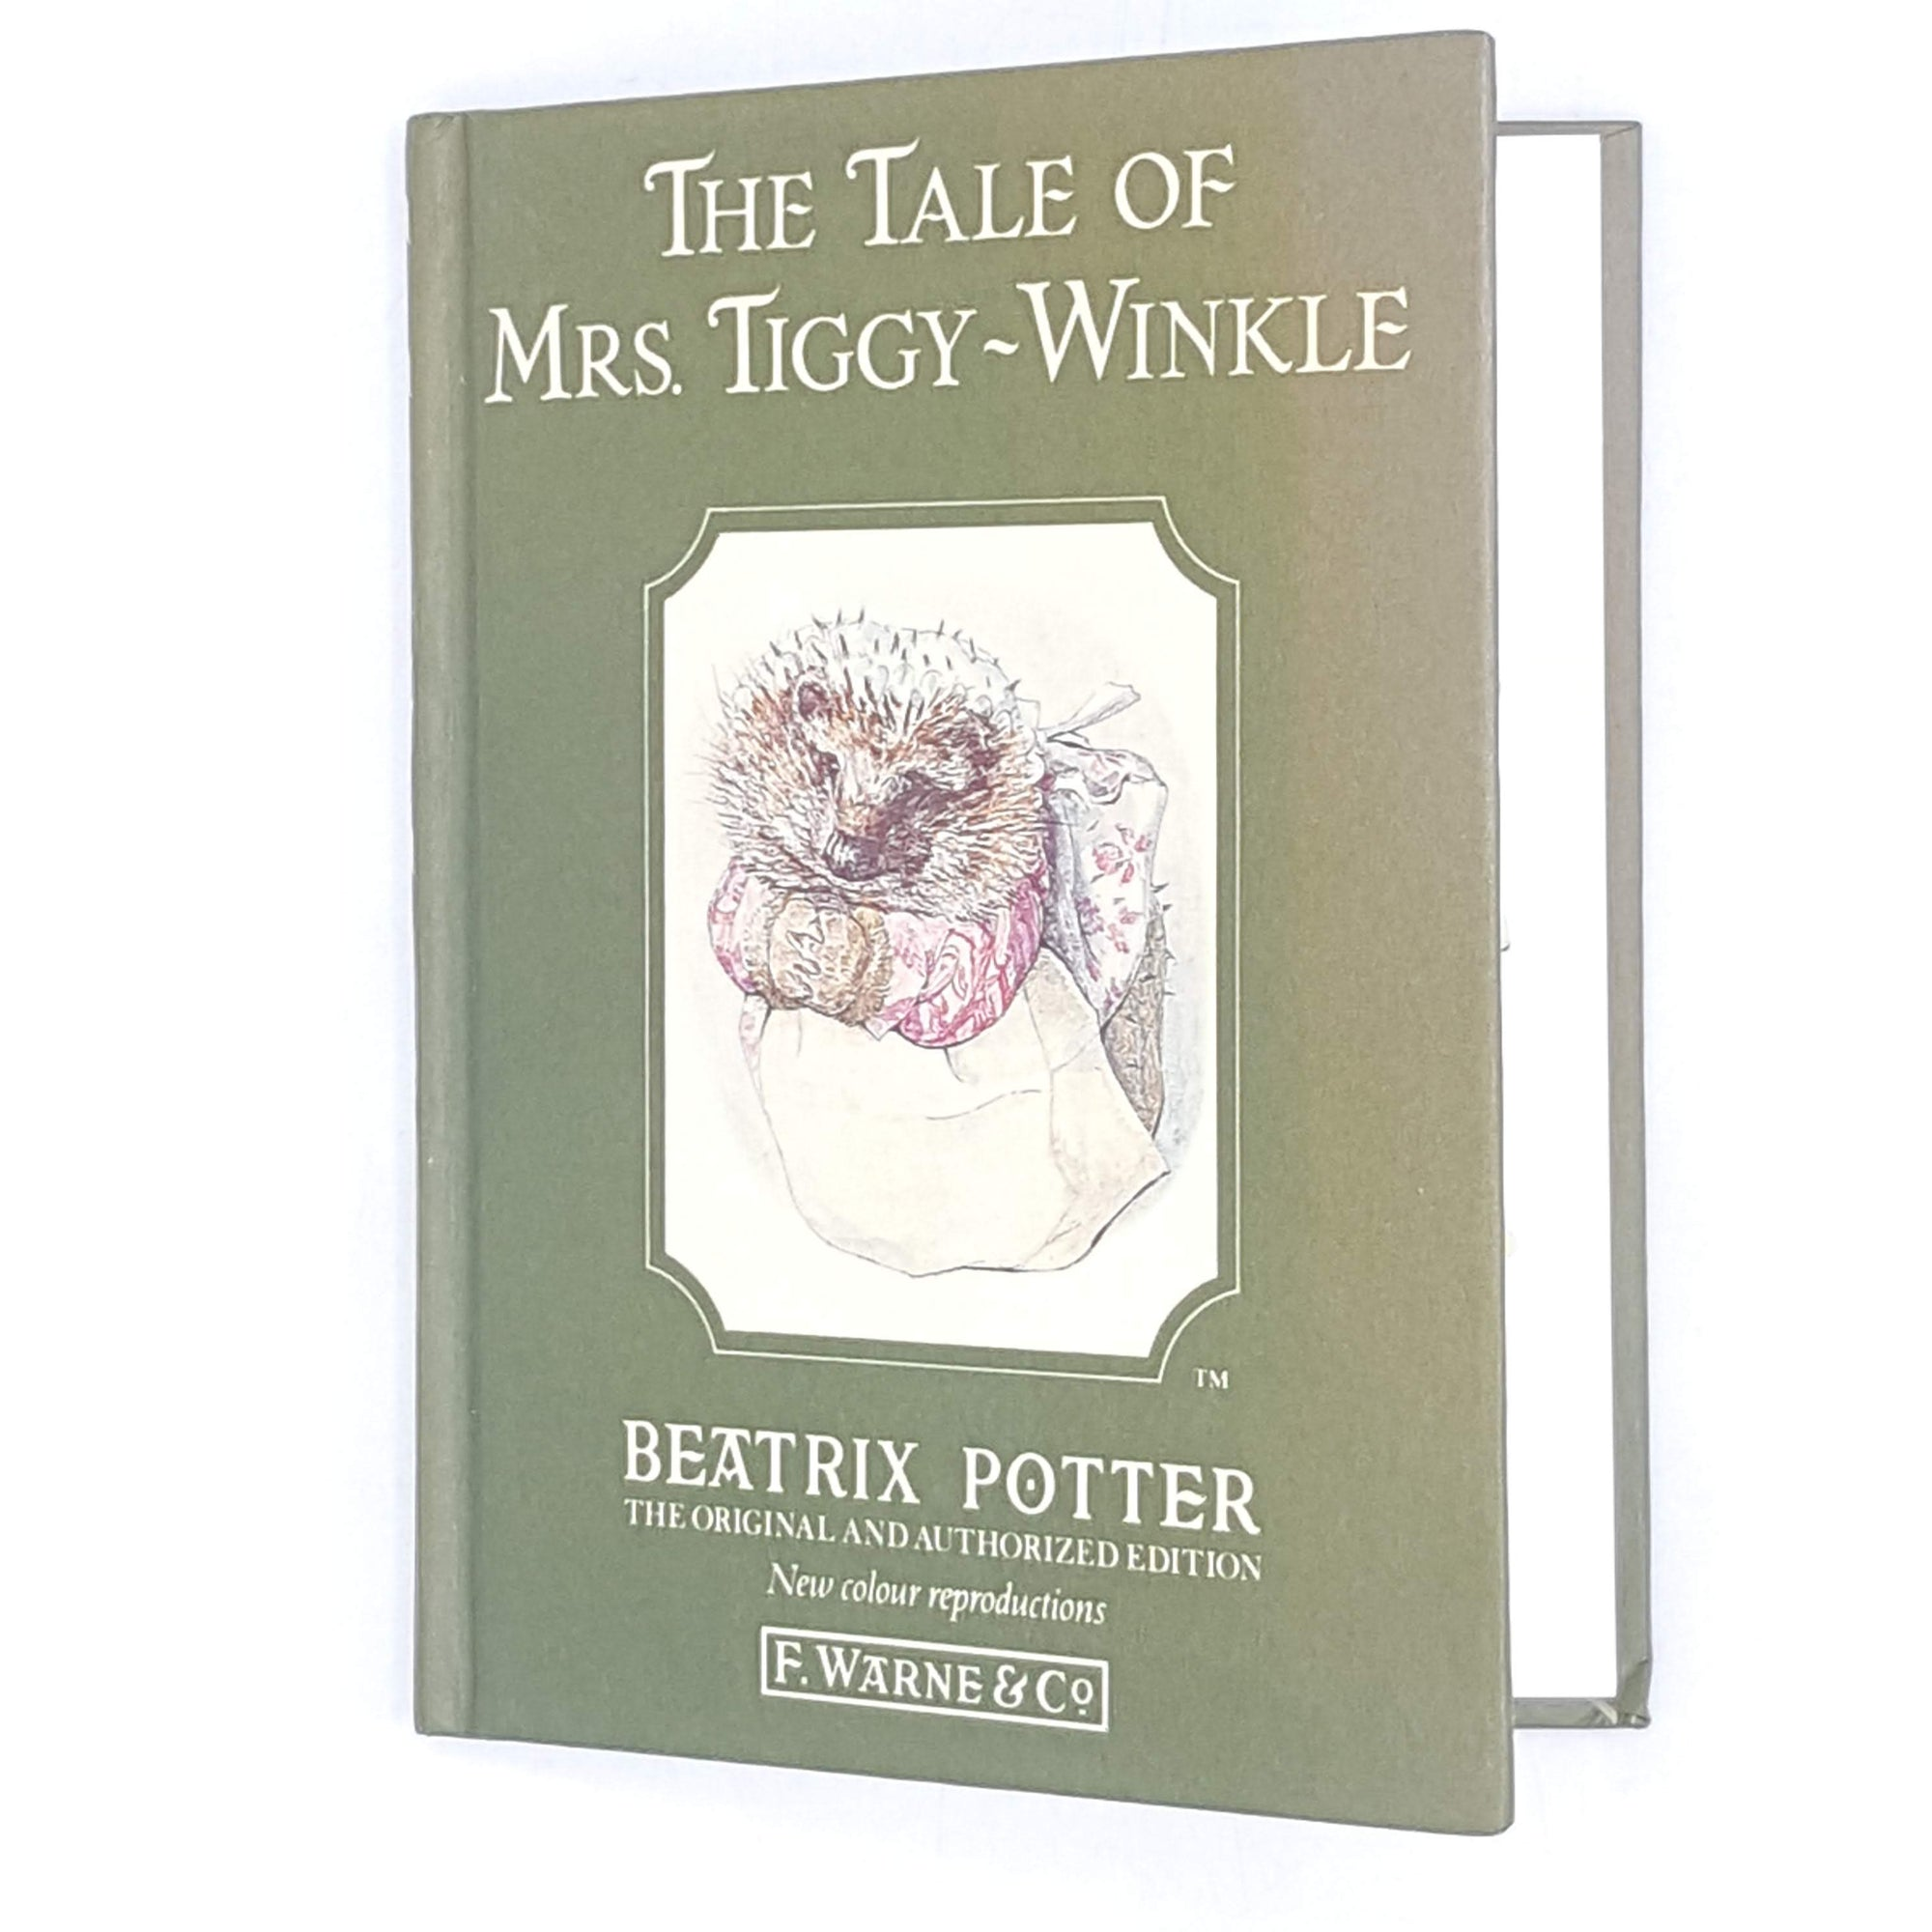 Beatrix Potter's The Tale of Mrs. Tiggle-Winkle